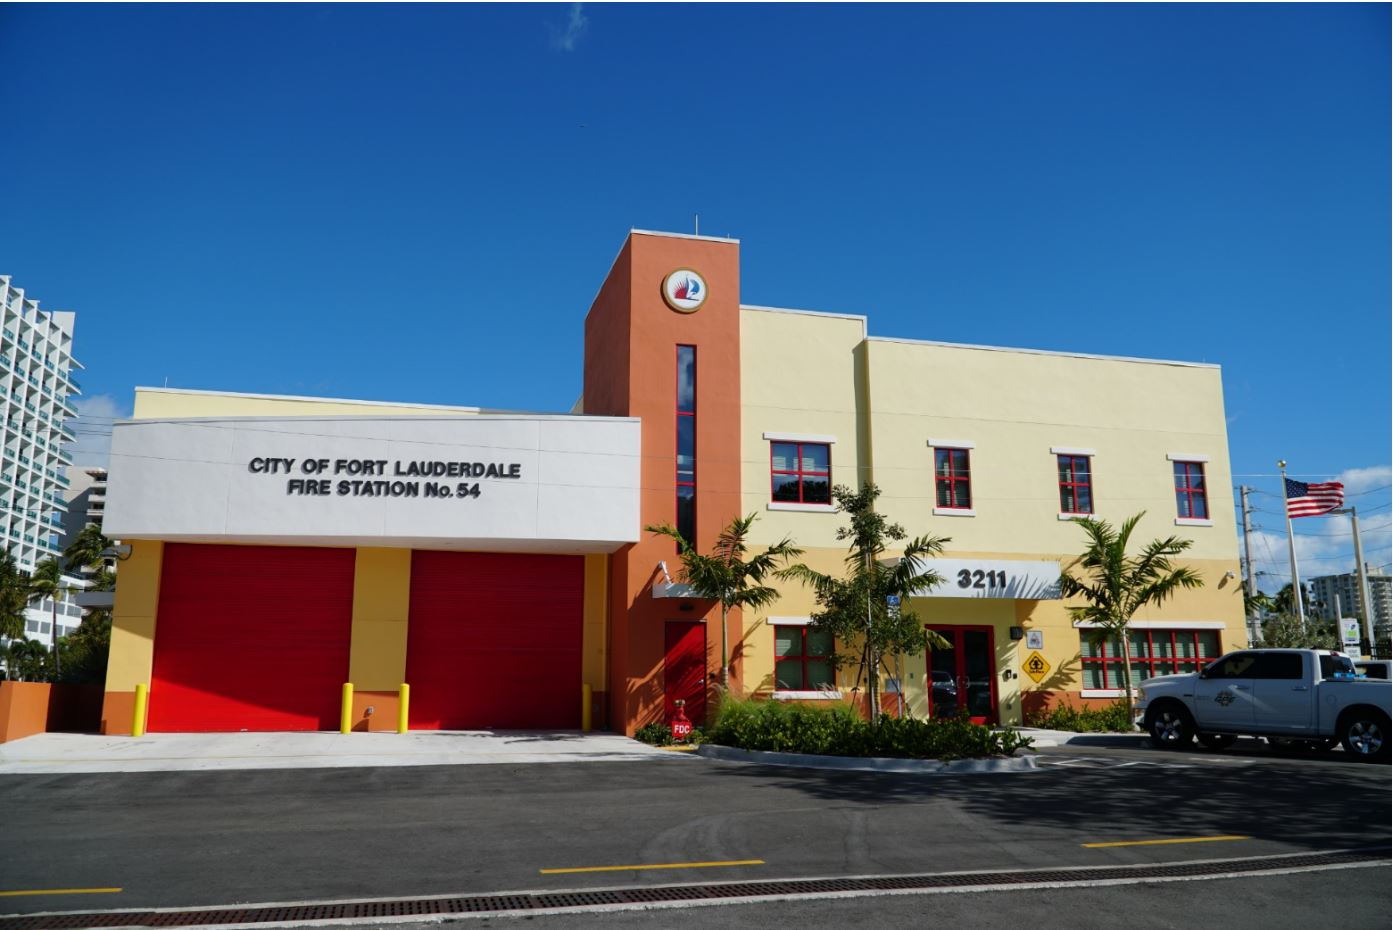 City of Fort Lauderdale, FL : Fire Stations